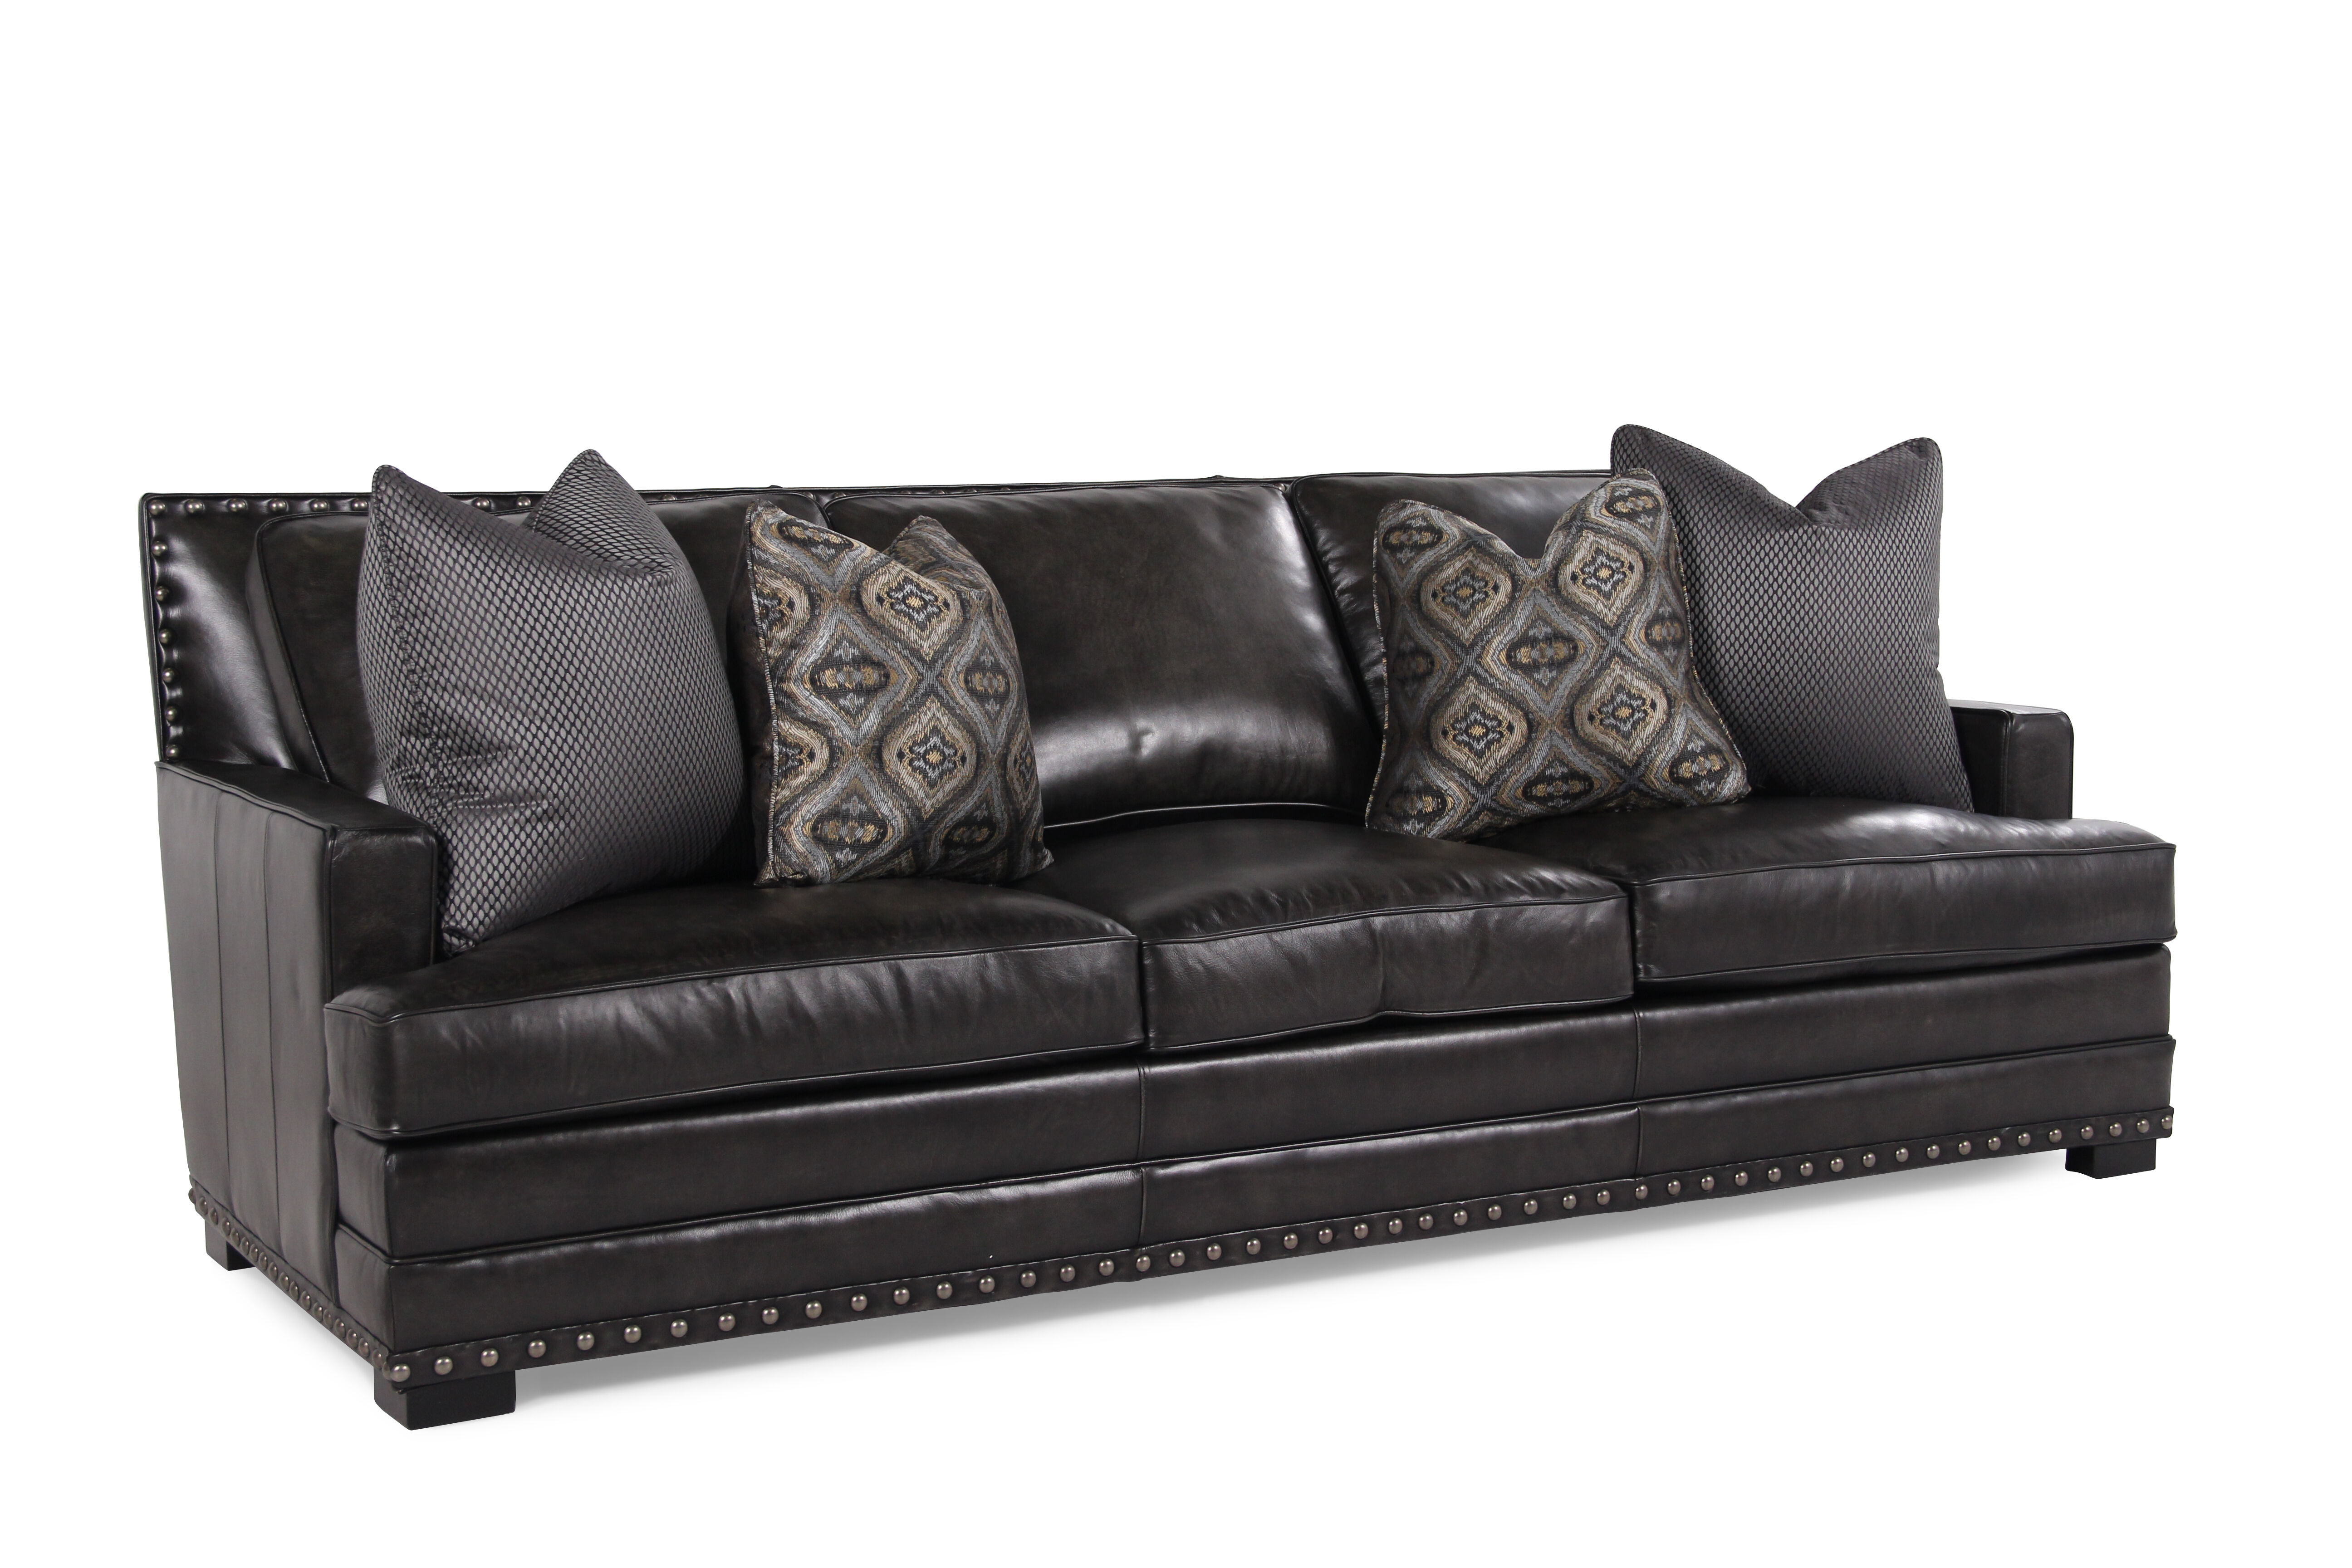 bernhardt cantor sectional sofa micasa bettsofa schneider graphite leather mathis brothers